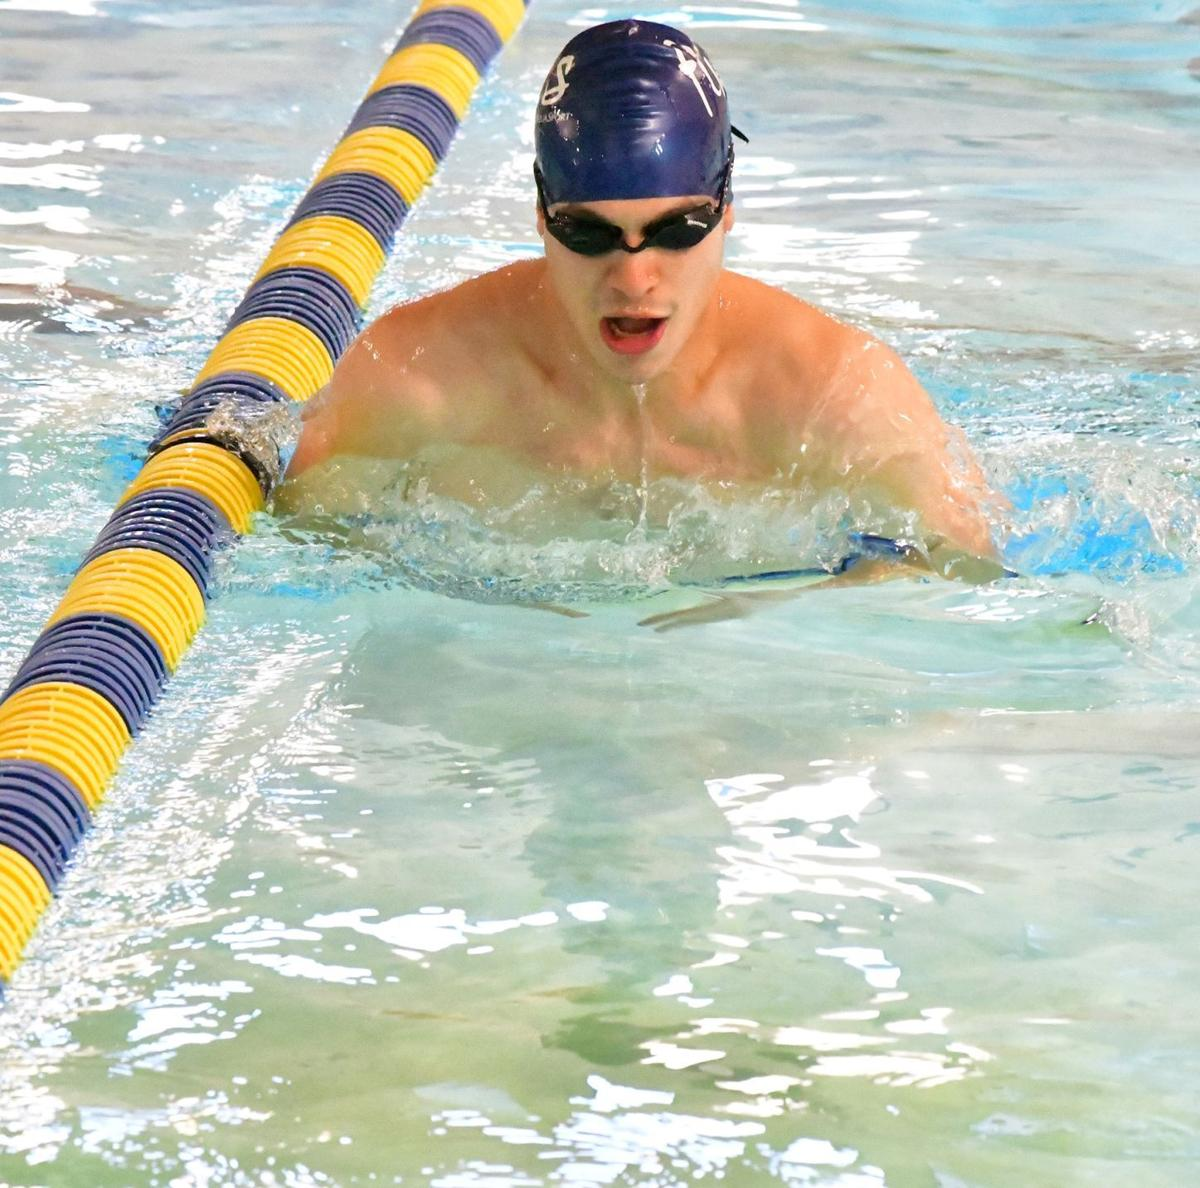 Saint Lazare's Gabriel Martel taking his shot at becoming a Paralympic swimmer